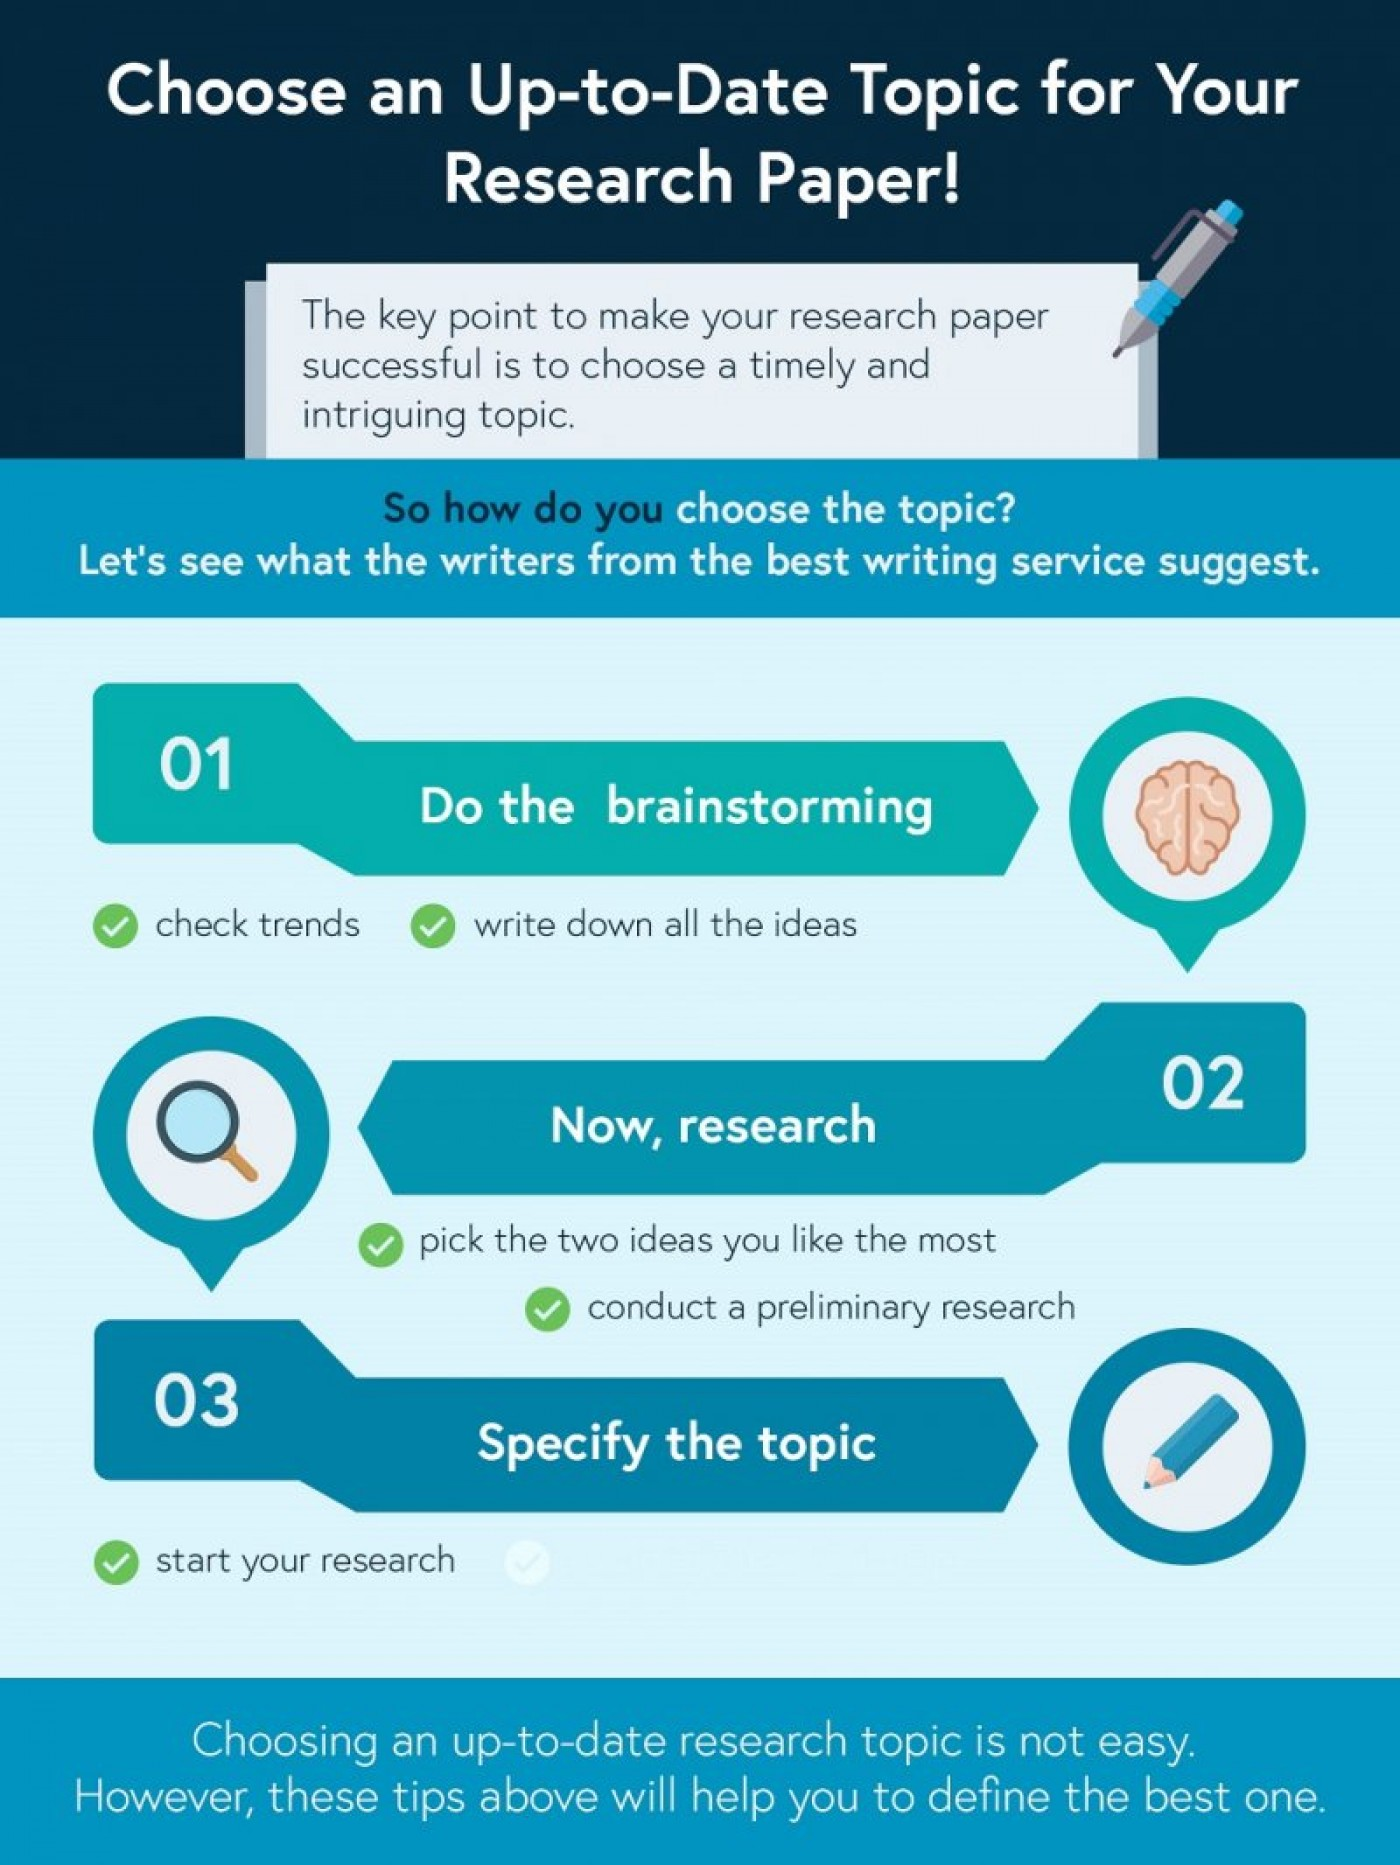 006 Research Paper Infographic Writing Dreaded Service Services In India Best Academic Online 1400